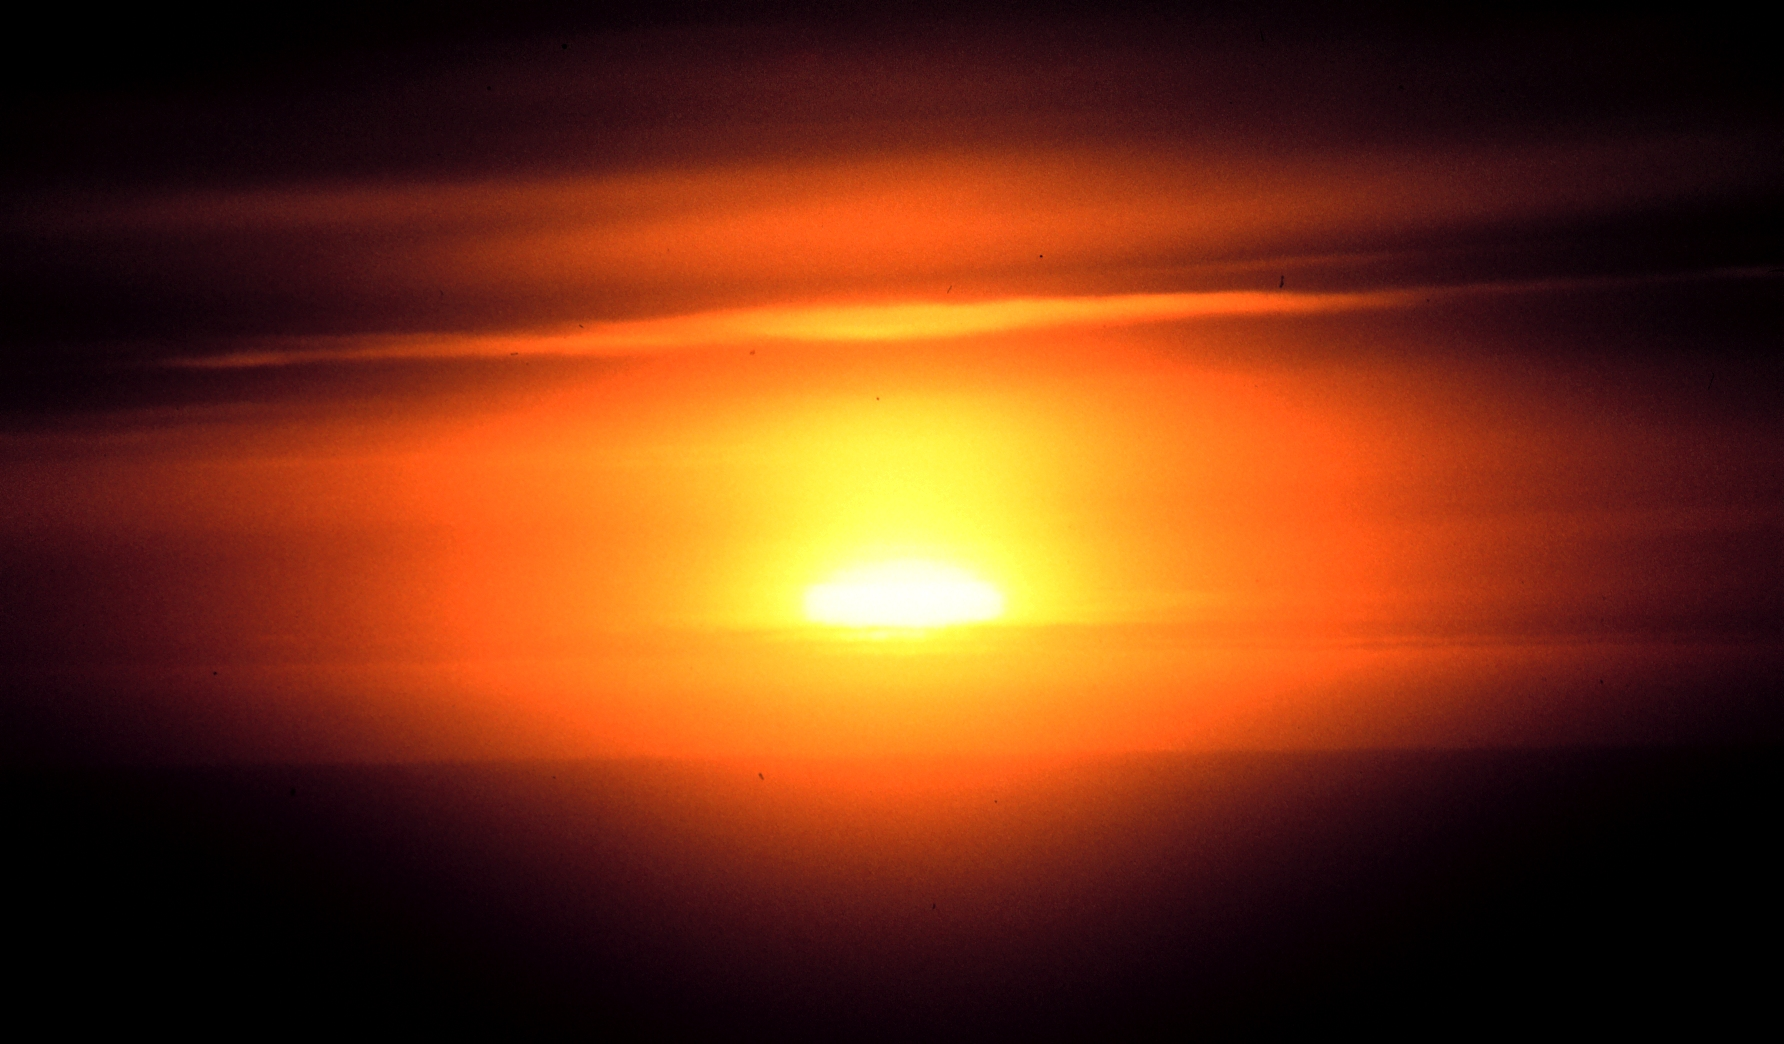 Haze_and_clouds_obscure_the_setting_sun_-_NOAA.jpg